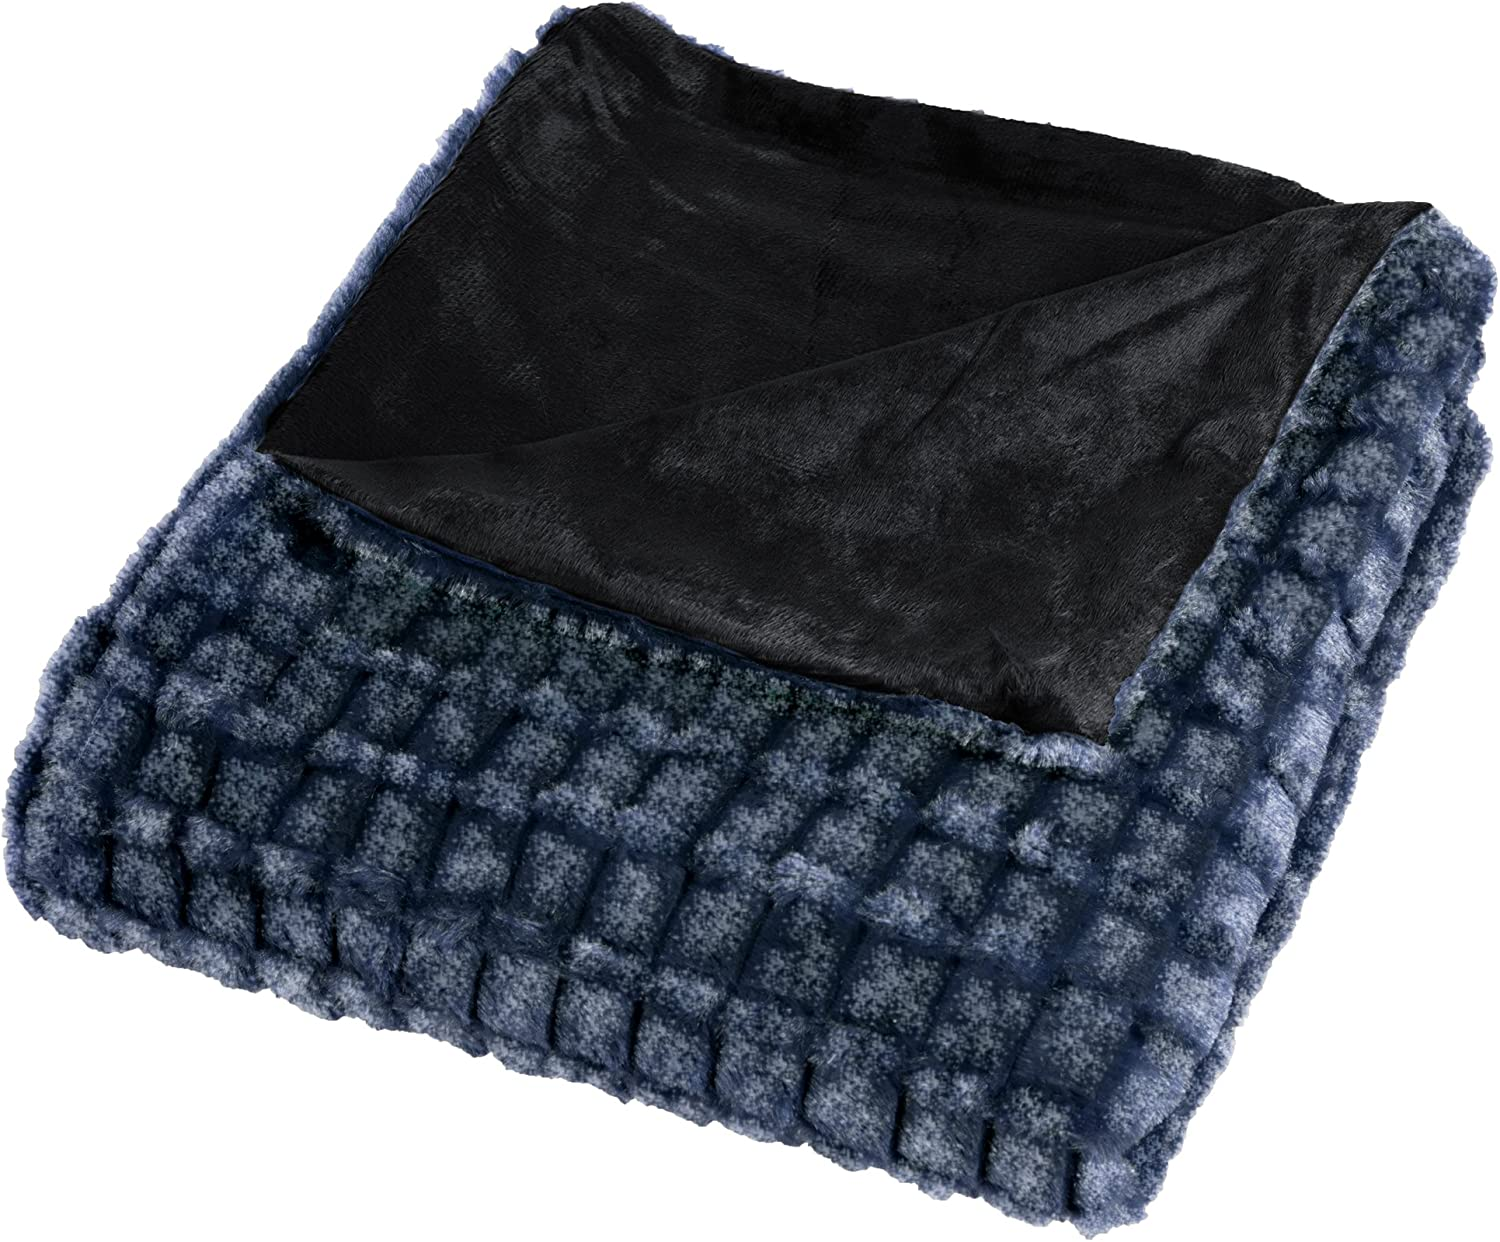 Lavish Home Plush Striped Embossed Faux Fur Mink Throw, Black/Grey